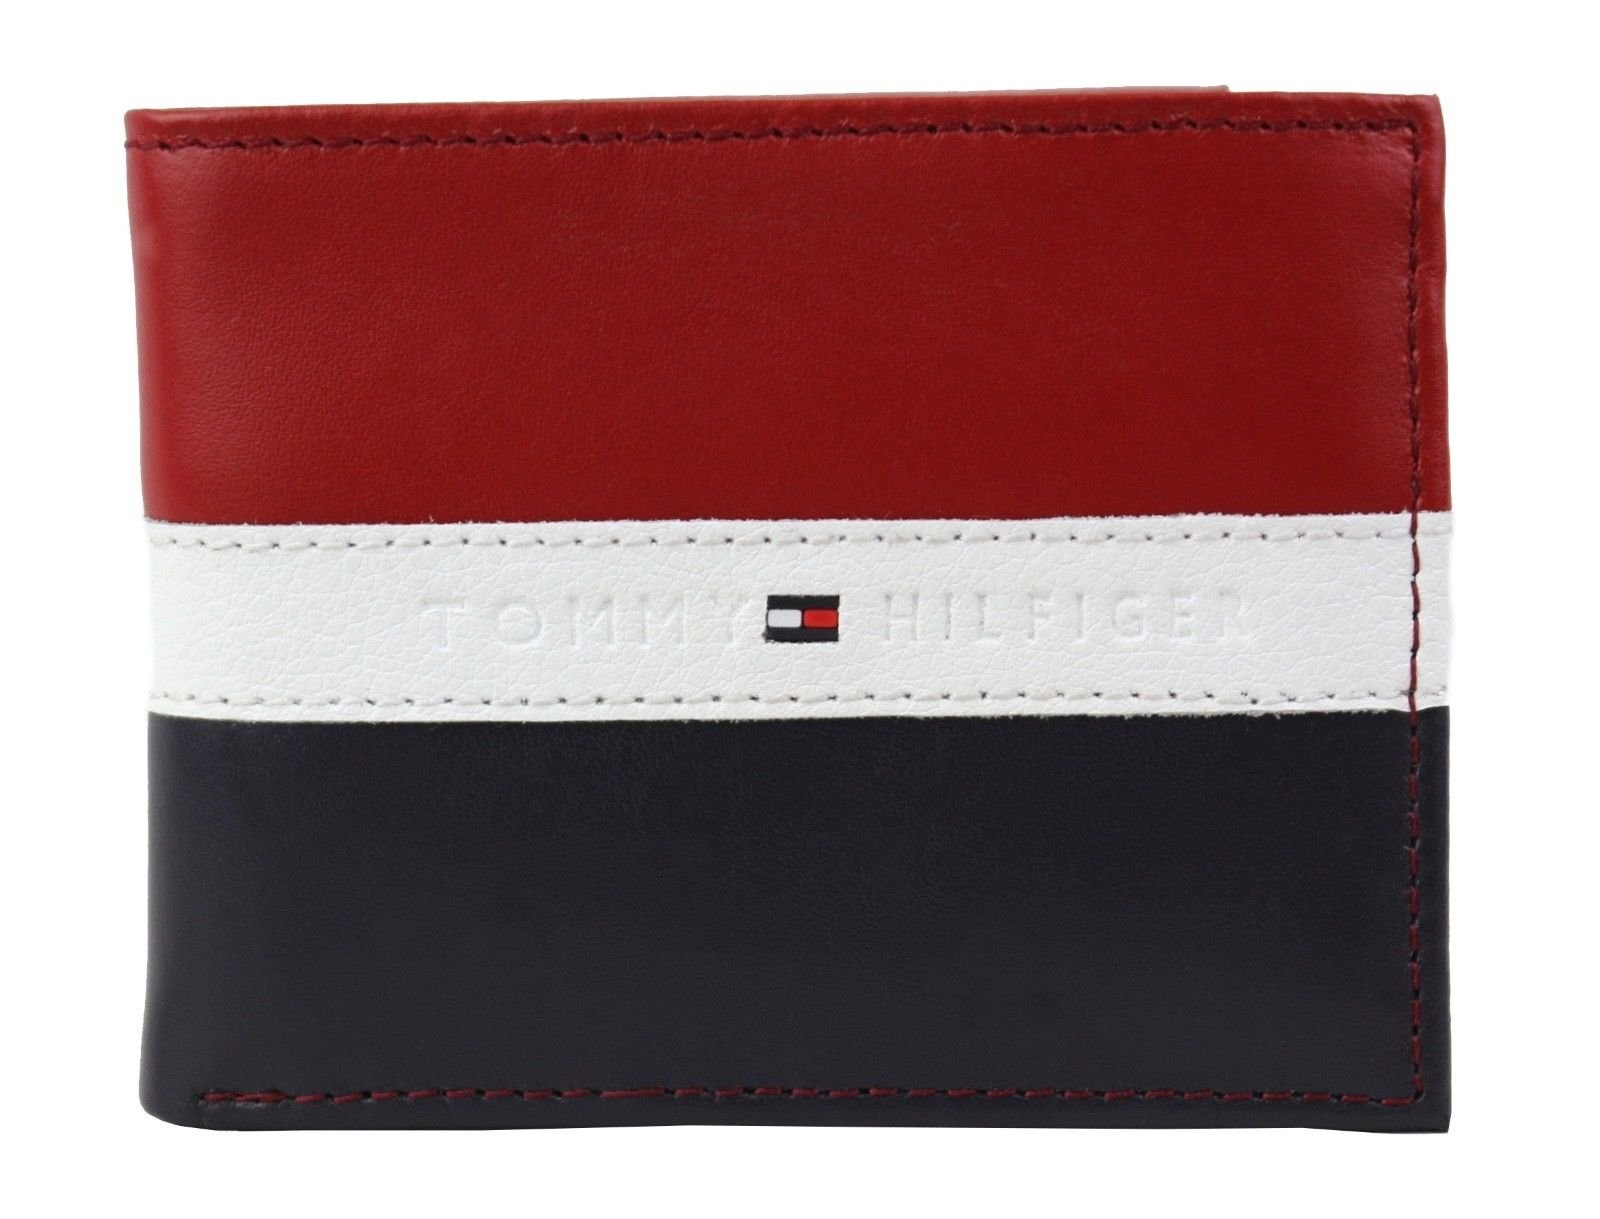 Tommy Hilfiger Men's Rfid Blocking 100% Leather Passcase Wallet, Red/Navy, One Size